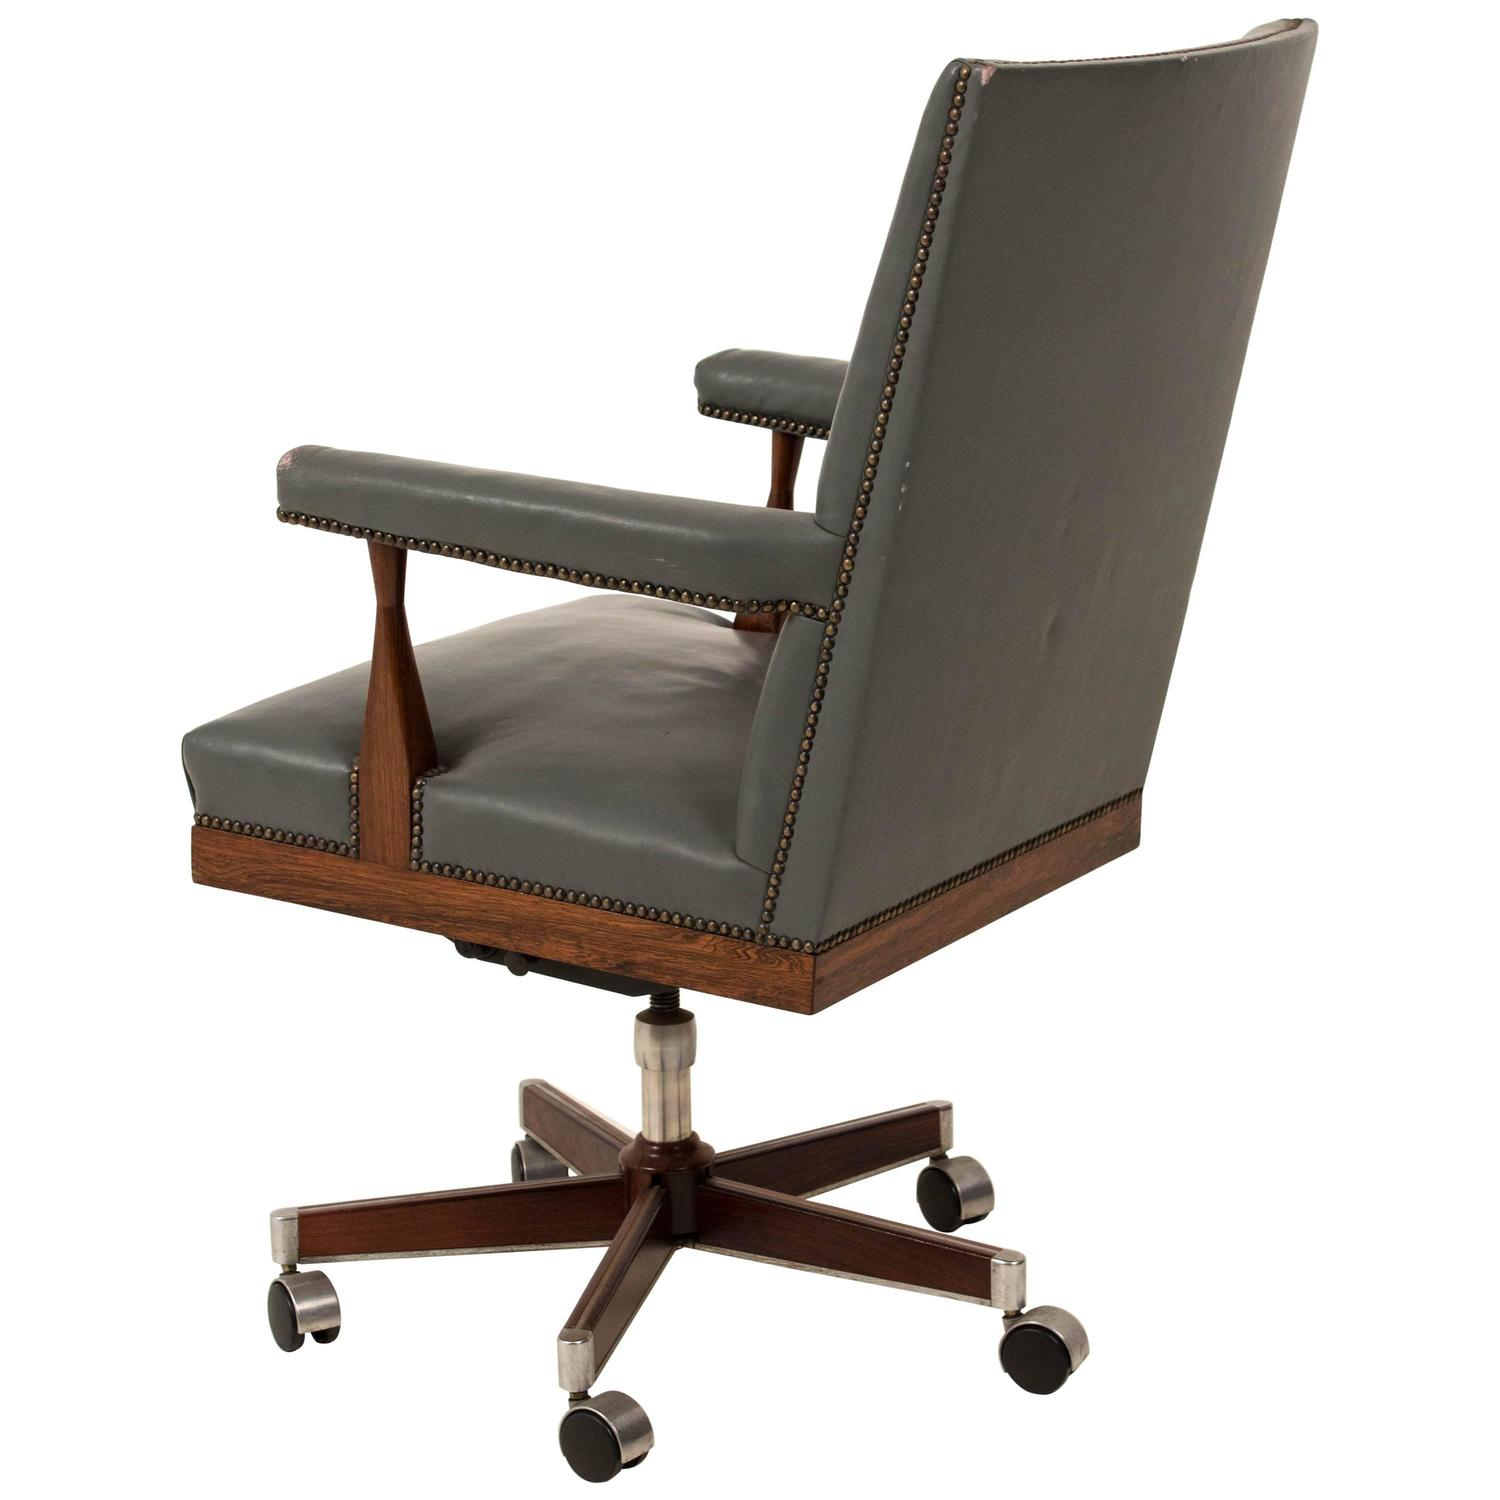 mid century modern office chairs. Magnificent Mid-Century Modern Office Chair By Theo Tempelman, 1960s For Sale At 1stdibs Mid Century Chairs I